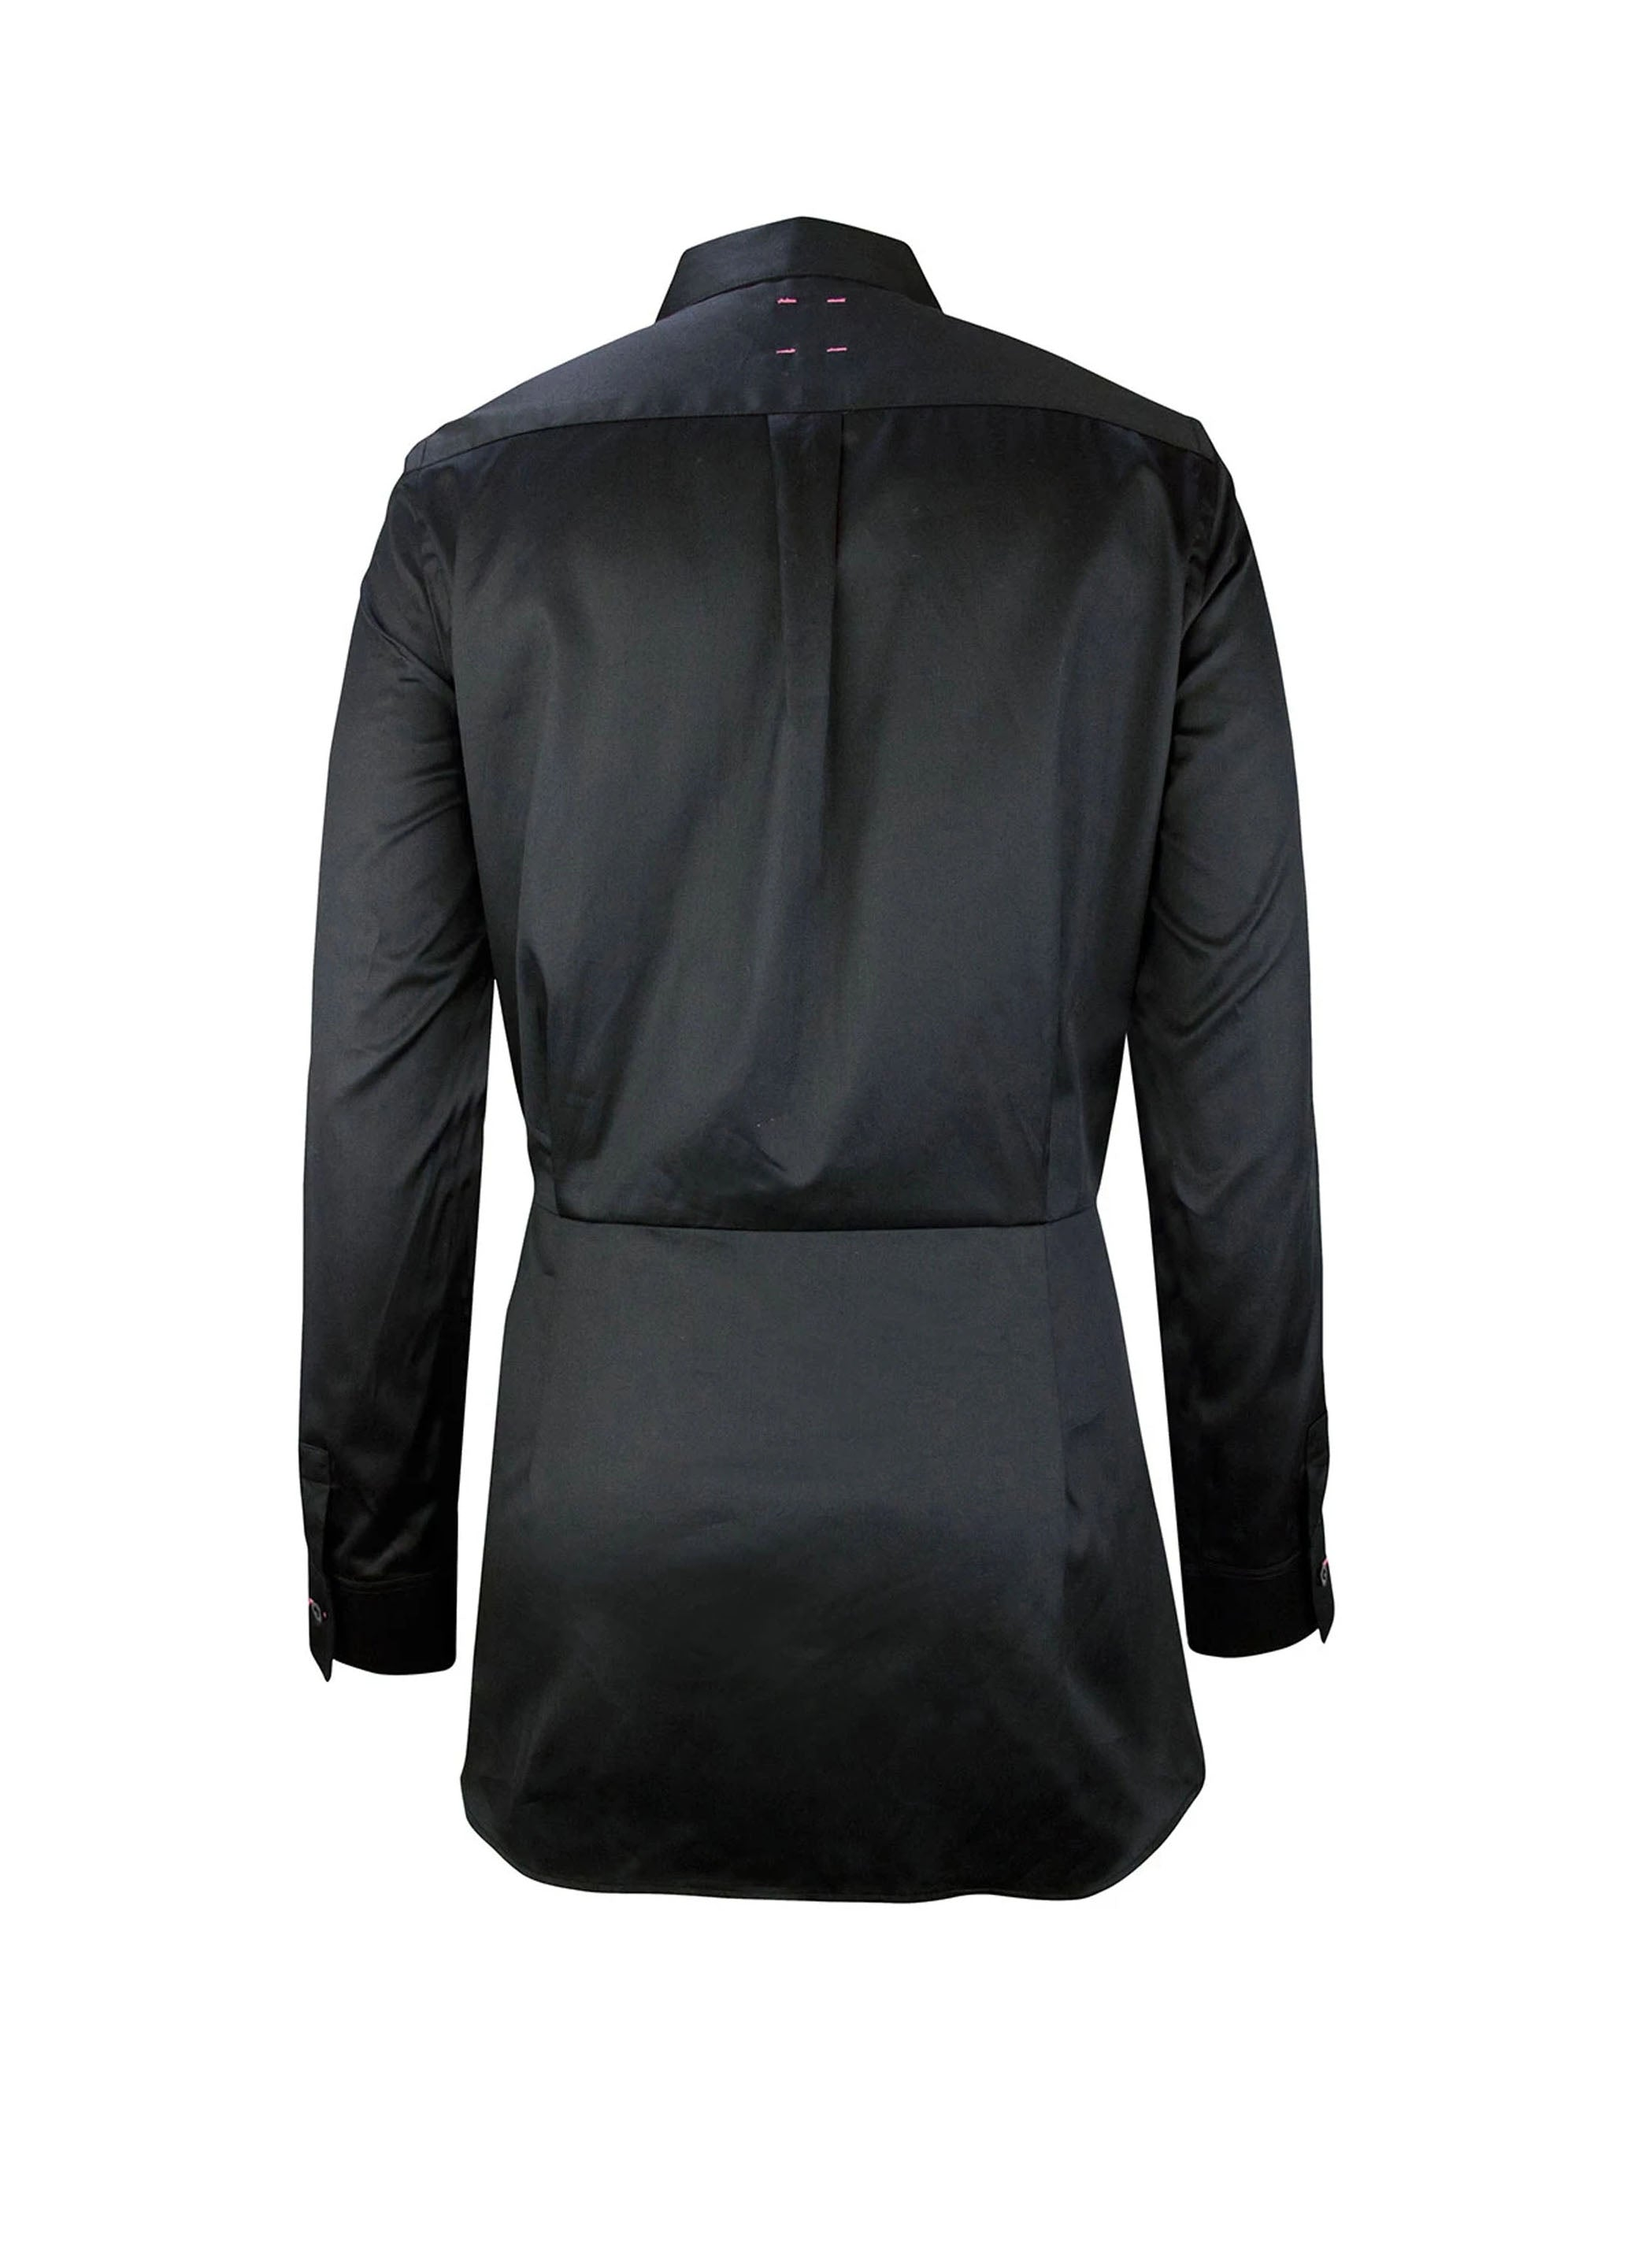 Self Tie Shirt - Black